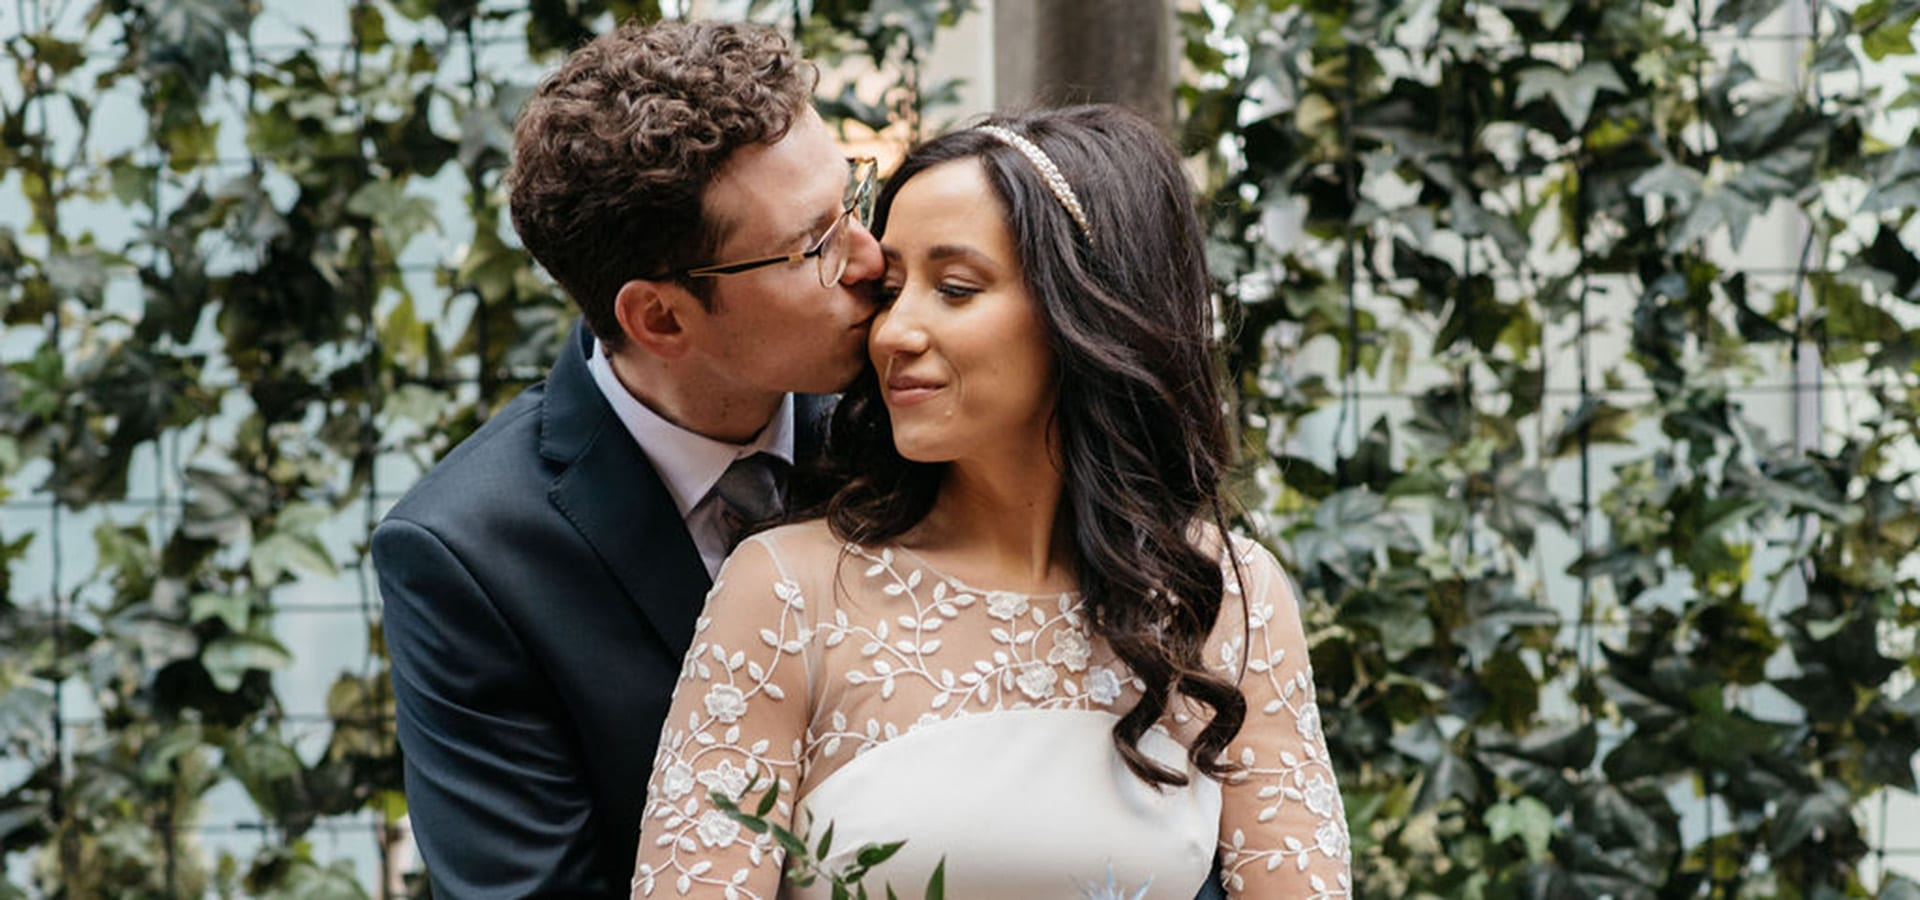 Hero image for Lia and Taylor's Intimate Wedding at Cluny Bistro & Boulangerie